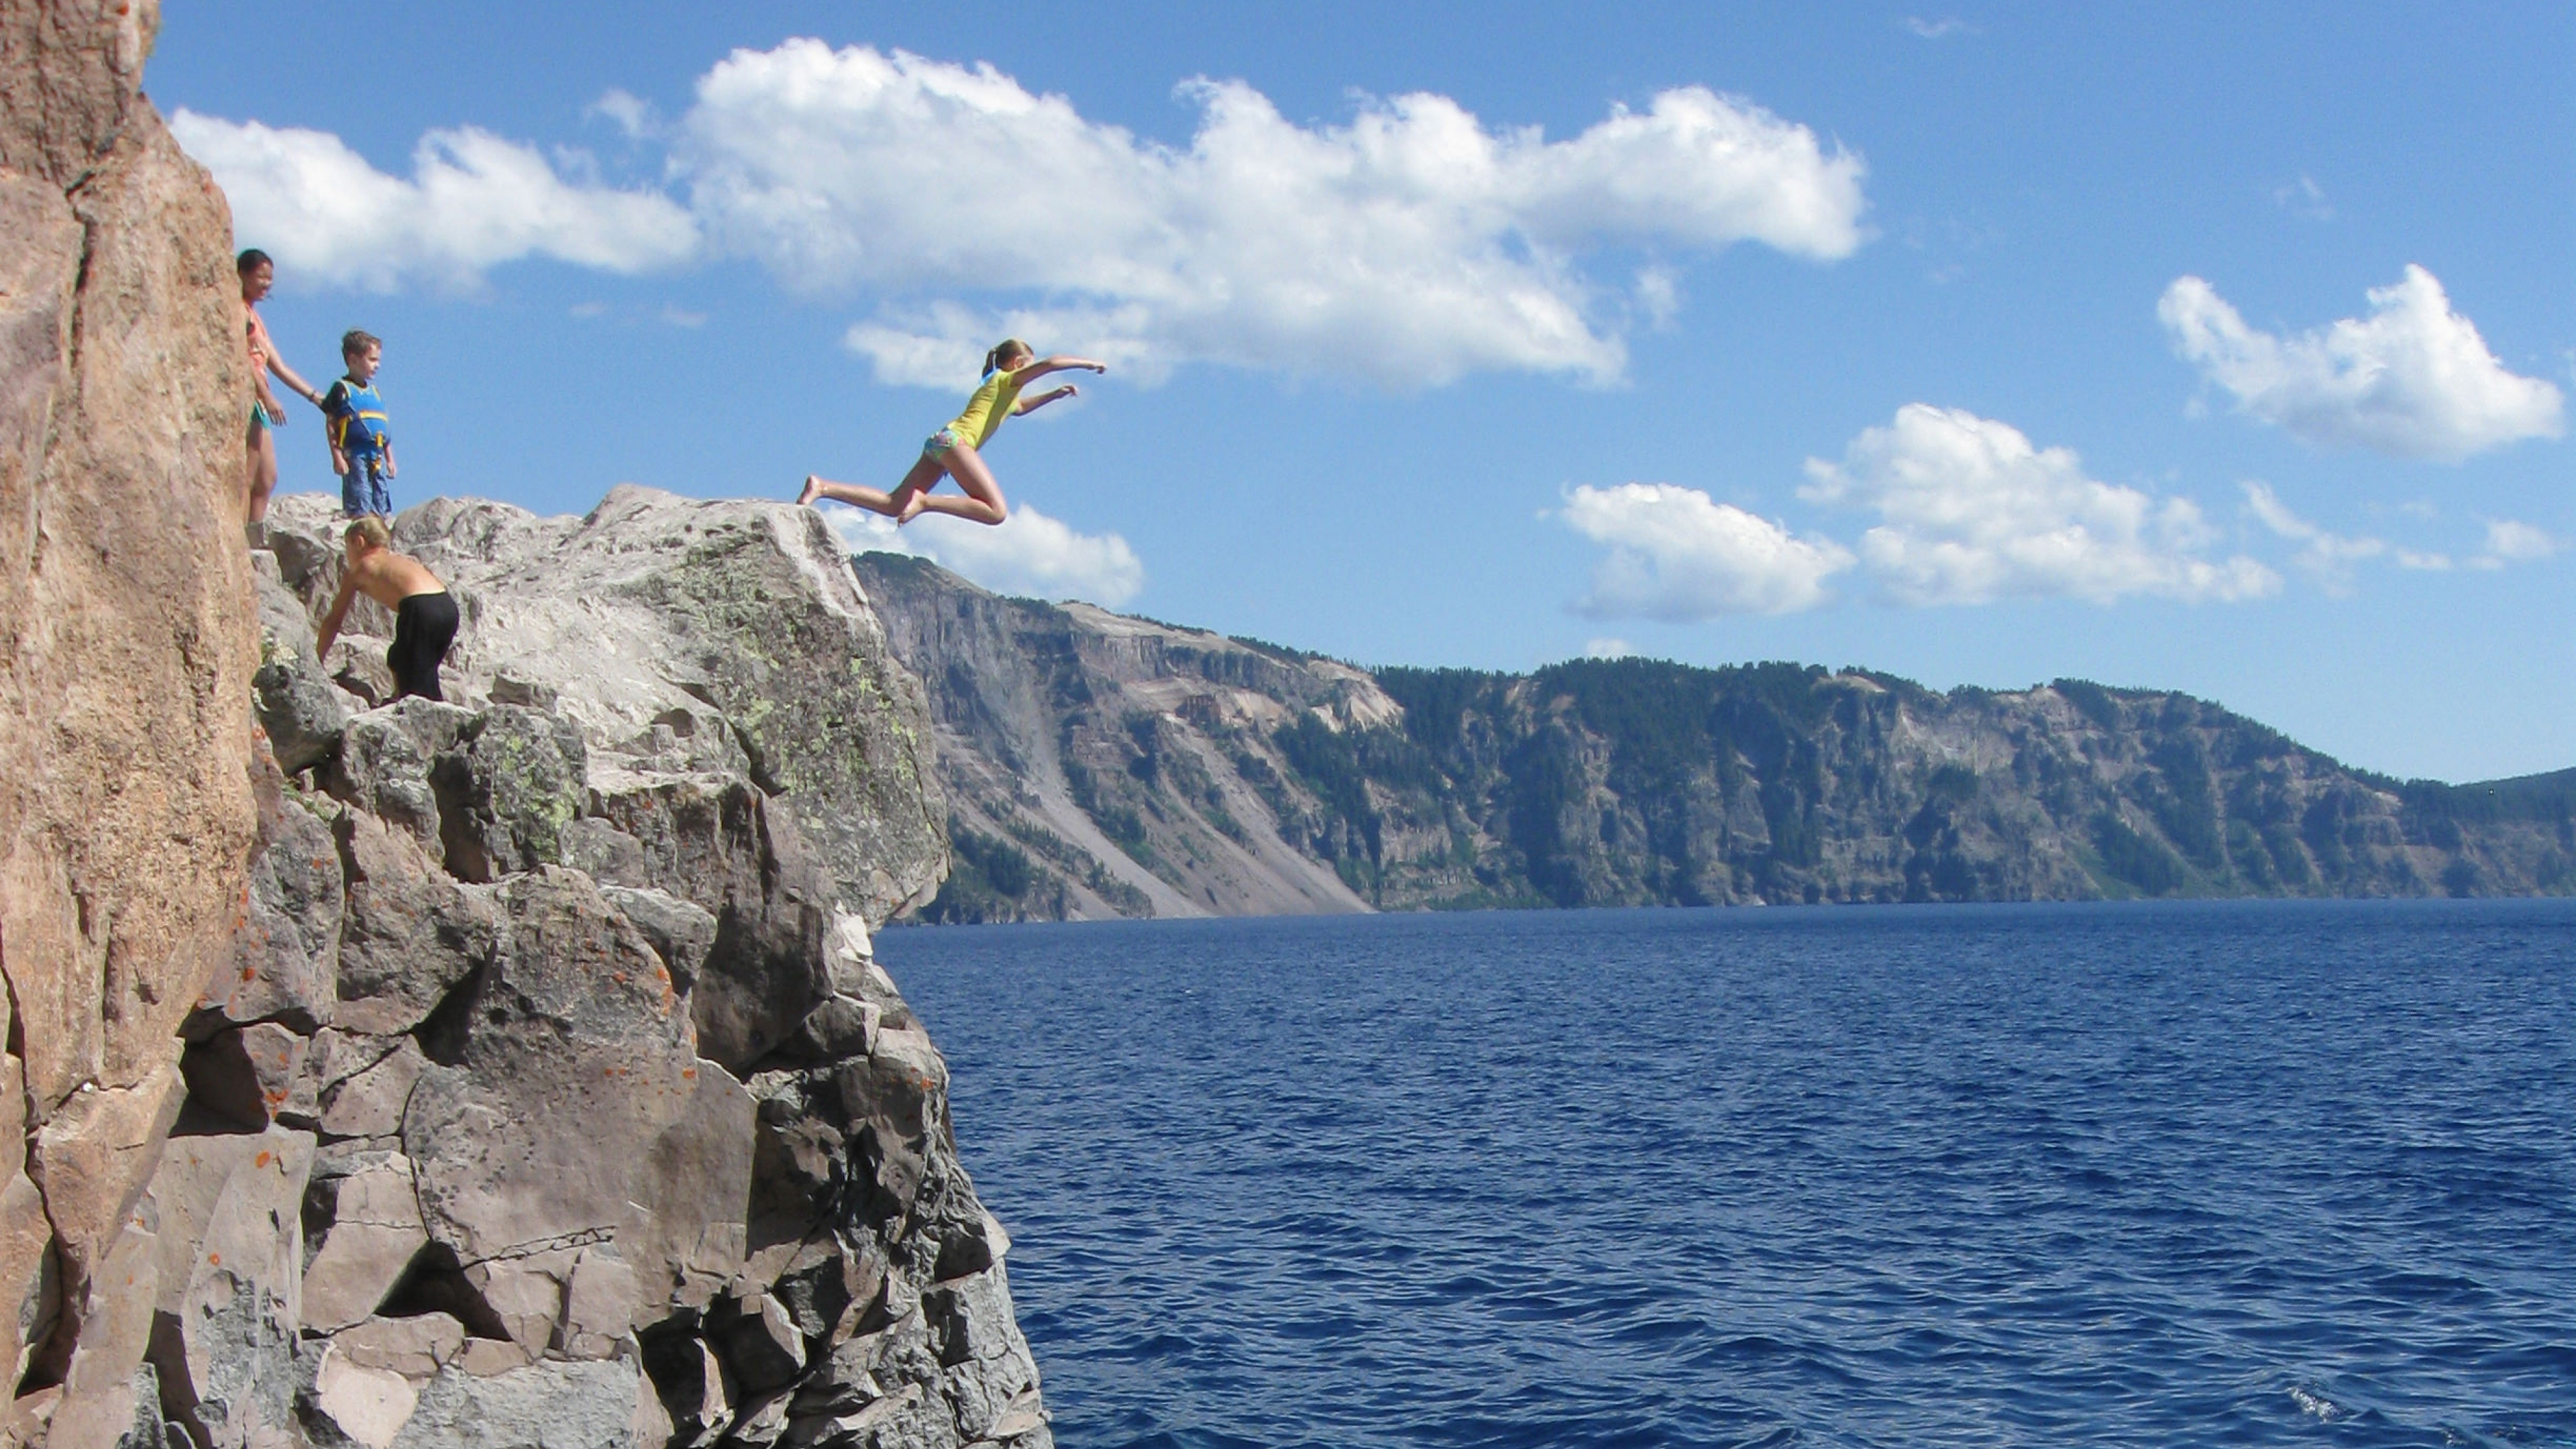 A girl jumping off a cliff into the lake at Crater Lake National Park